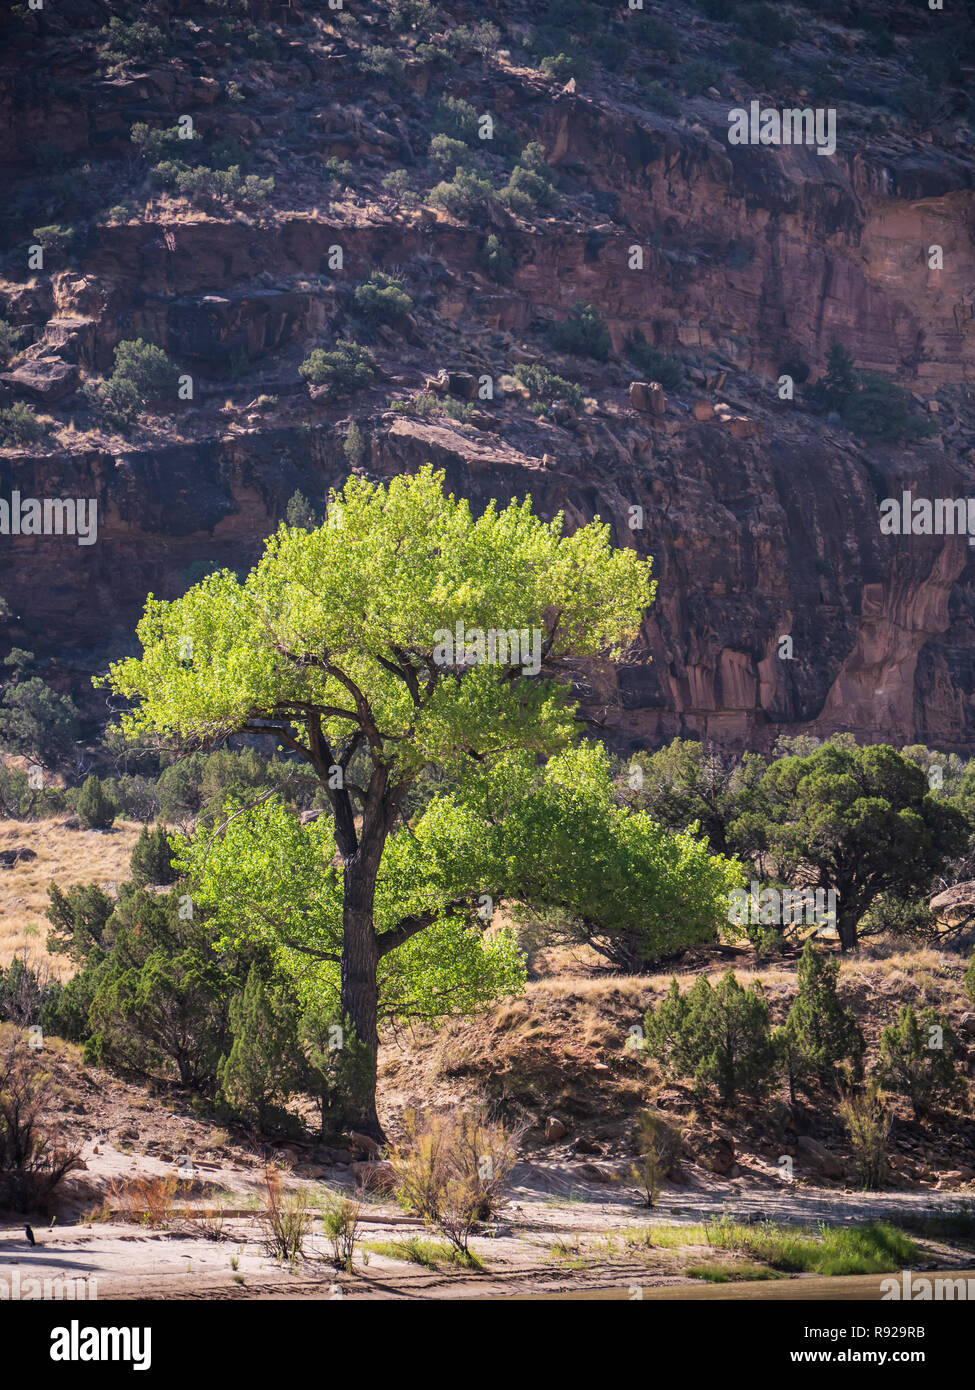 Cottonwood tree beside the river, Desolation Canyon north of Green River, Utah. - Stock Image